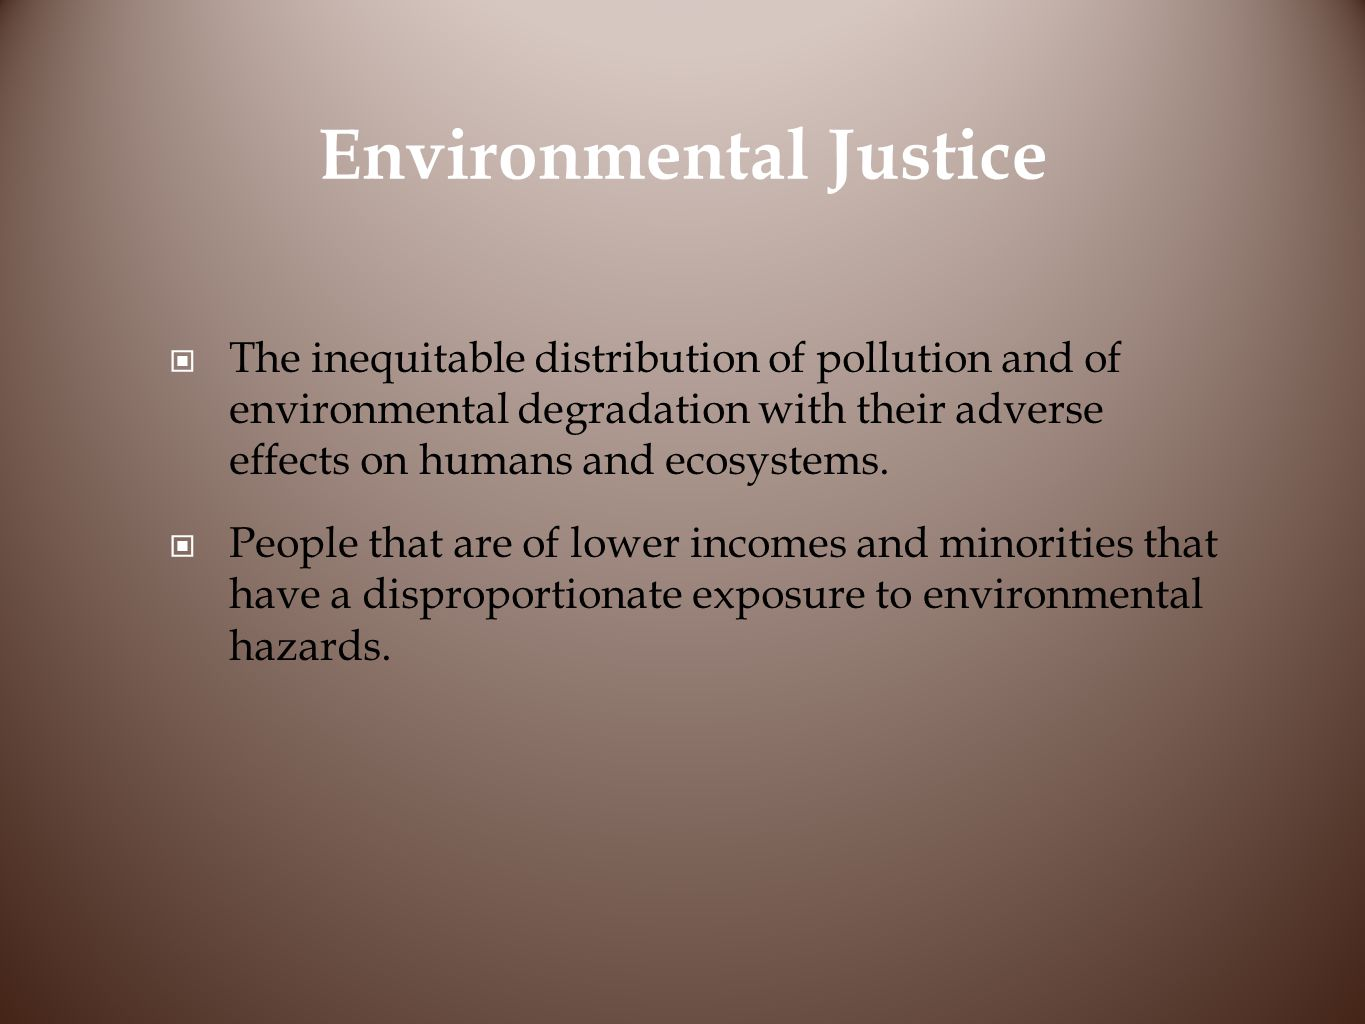 Environmental Justice The inequitable distribution of pollution and of environmental degradation with their adverse effects on humans and ecosystems.